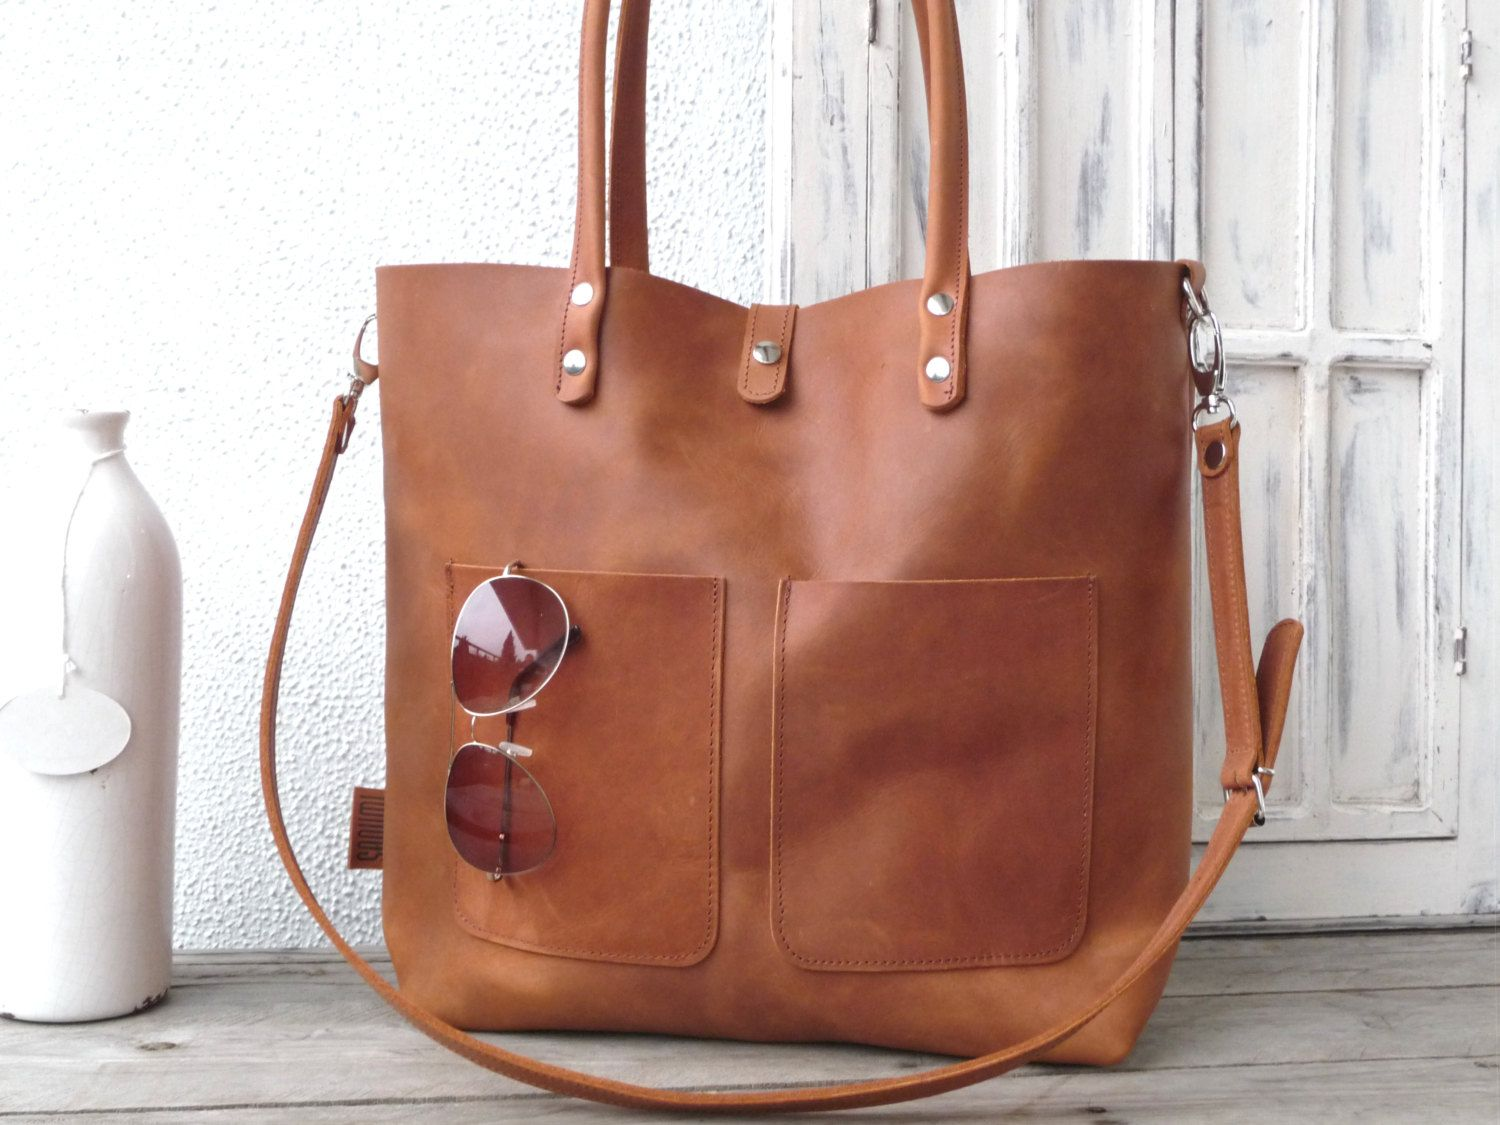 Leather bag, cowhide, full grain, leather tote, distressed